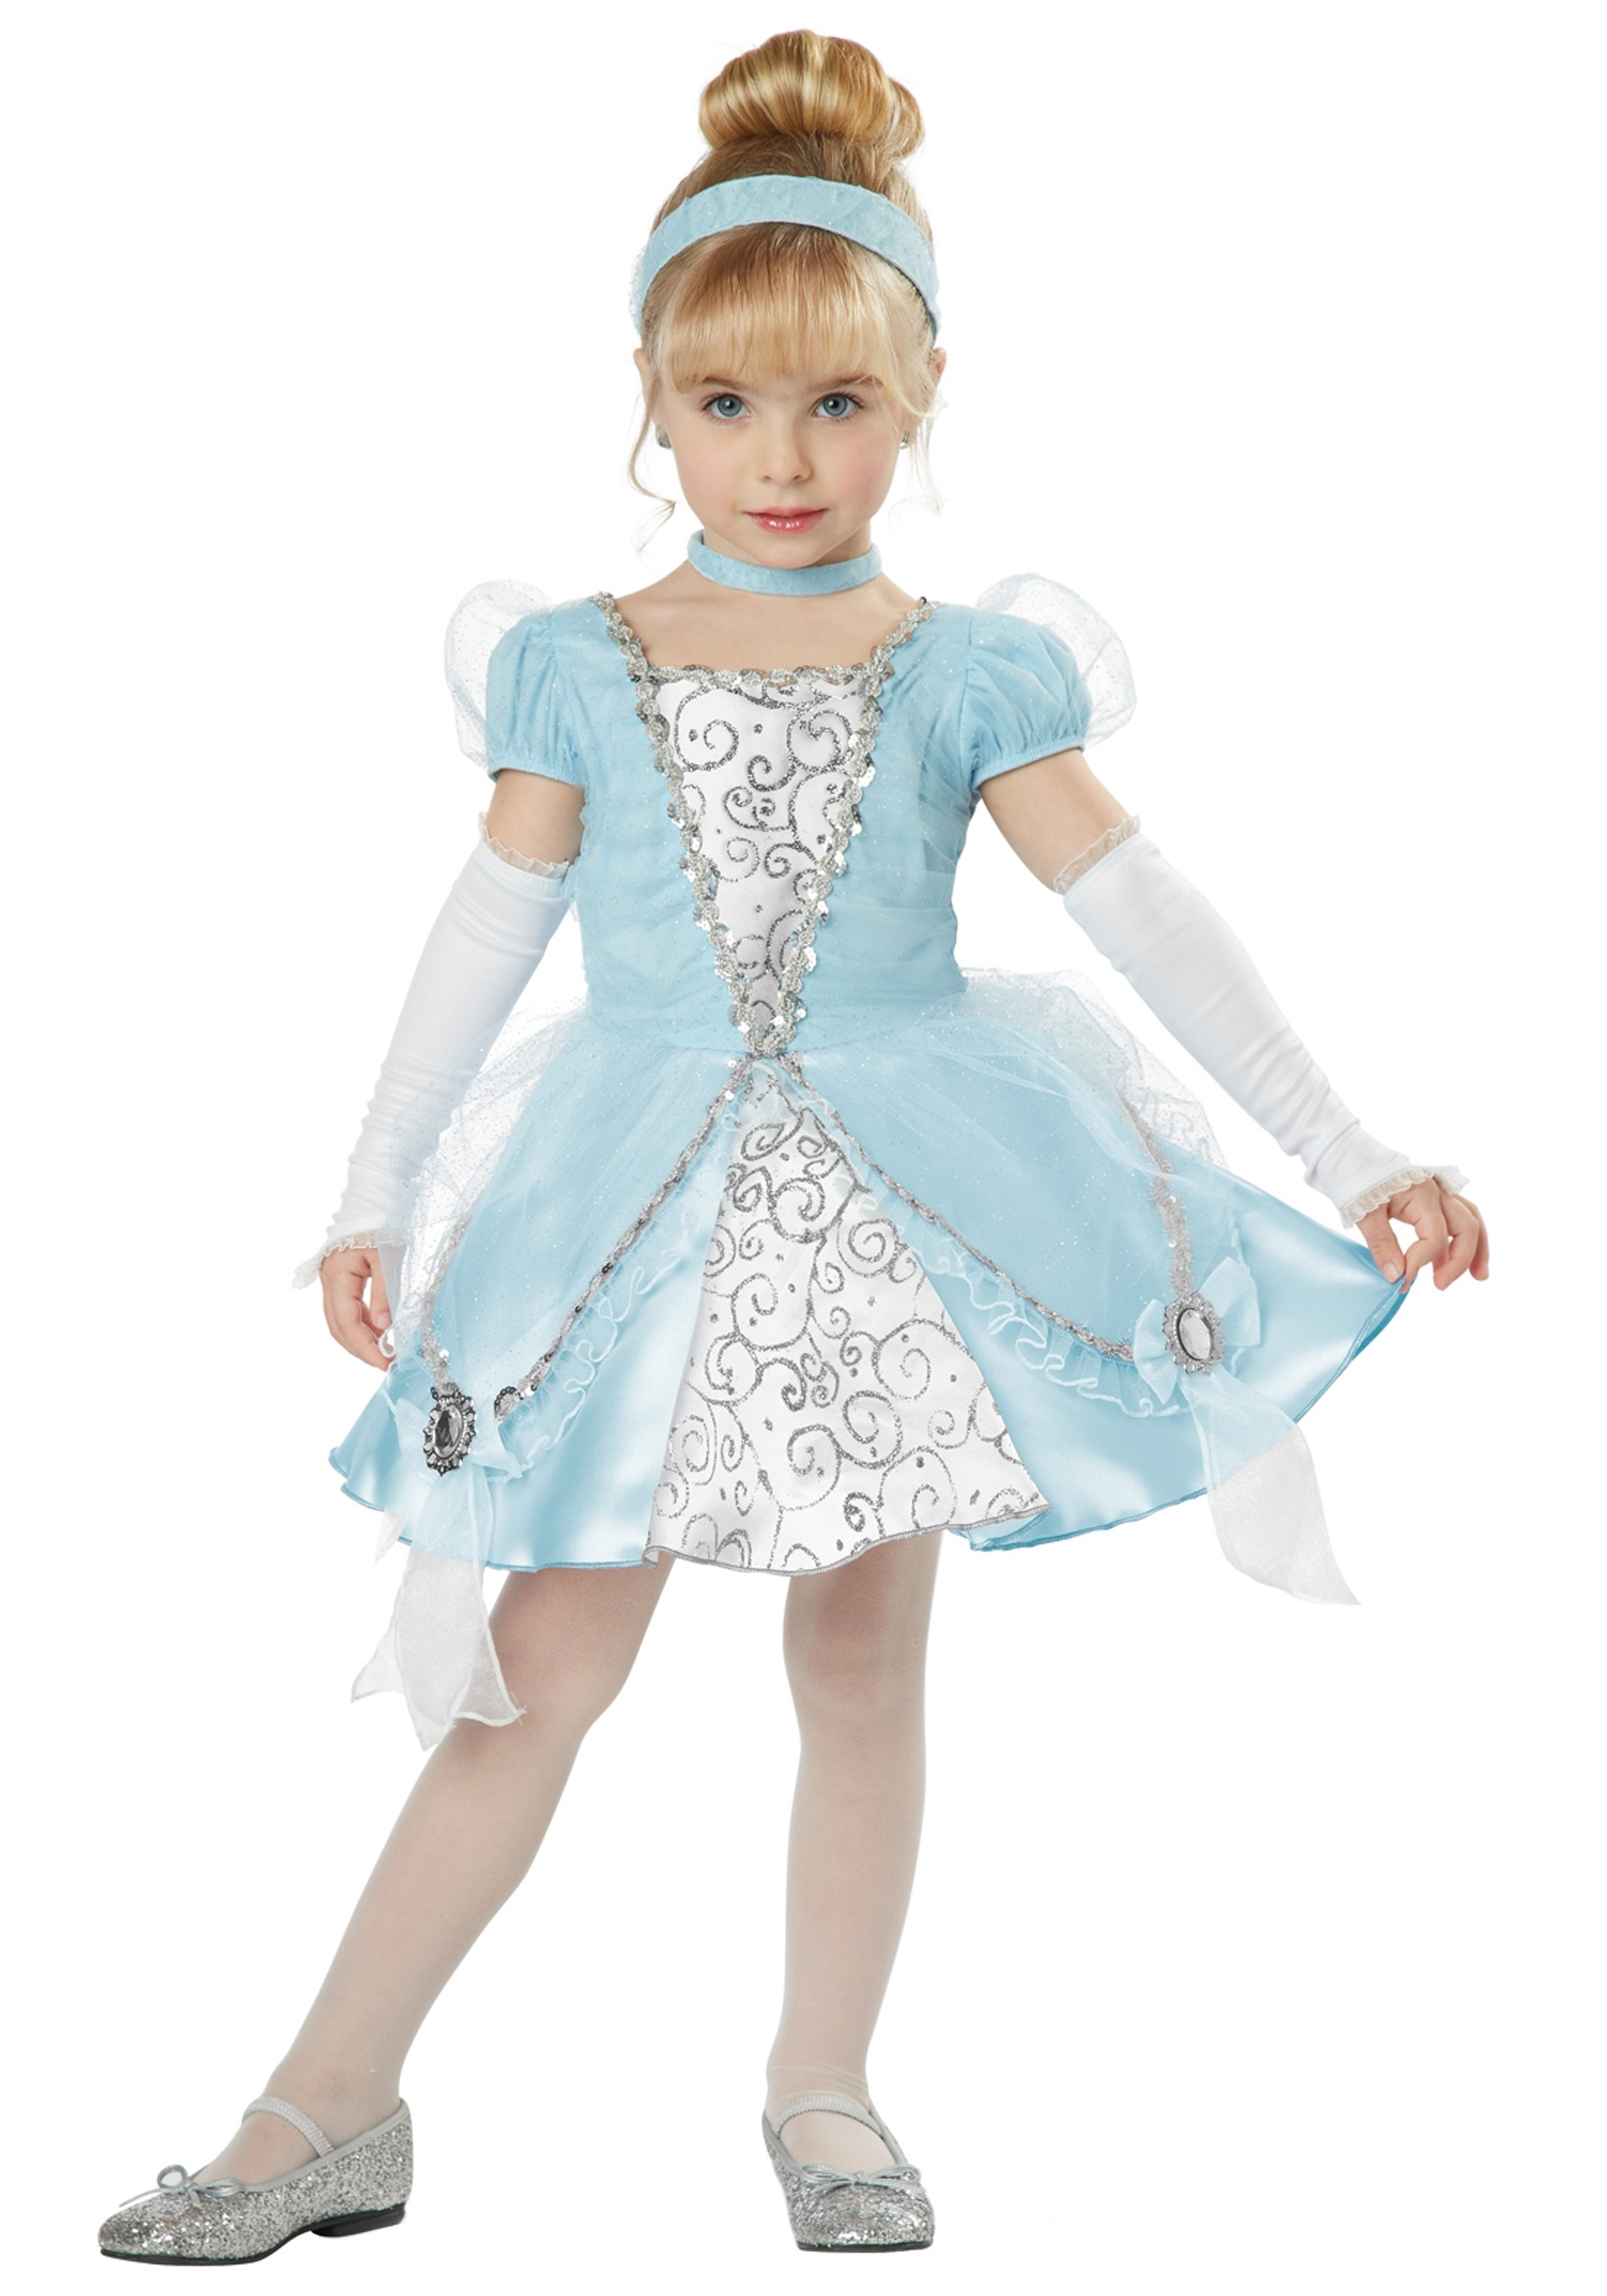 Find great deals on eBay for kids cinderella dress. Shop with confidence.